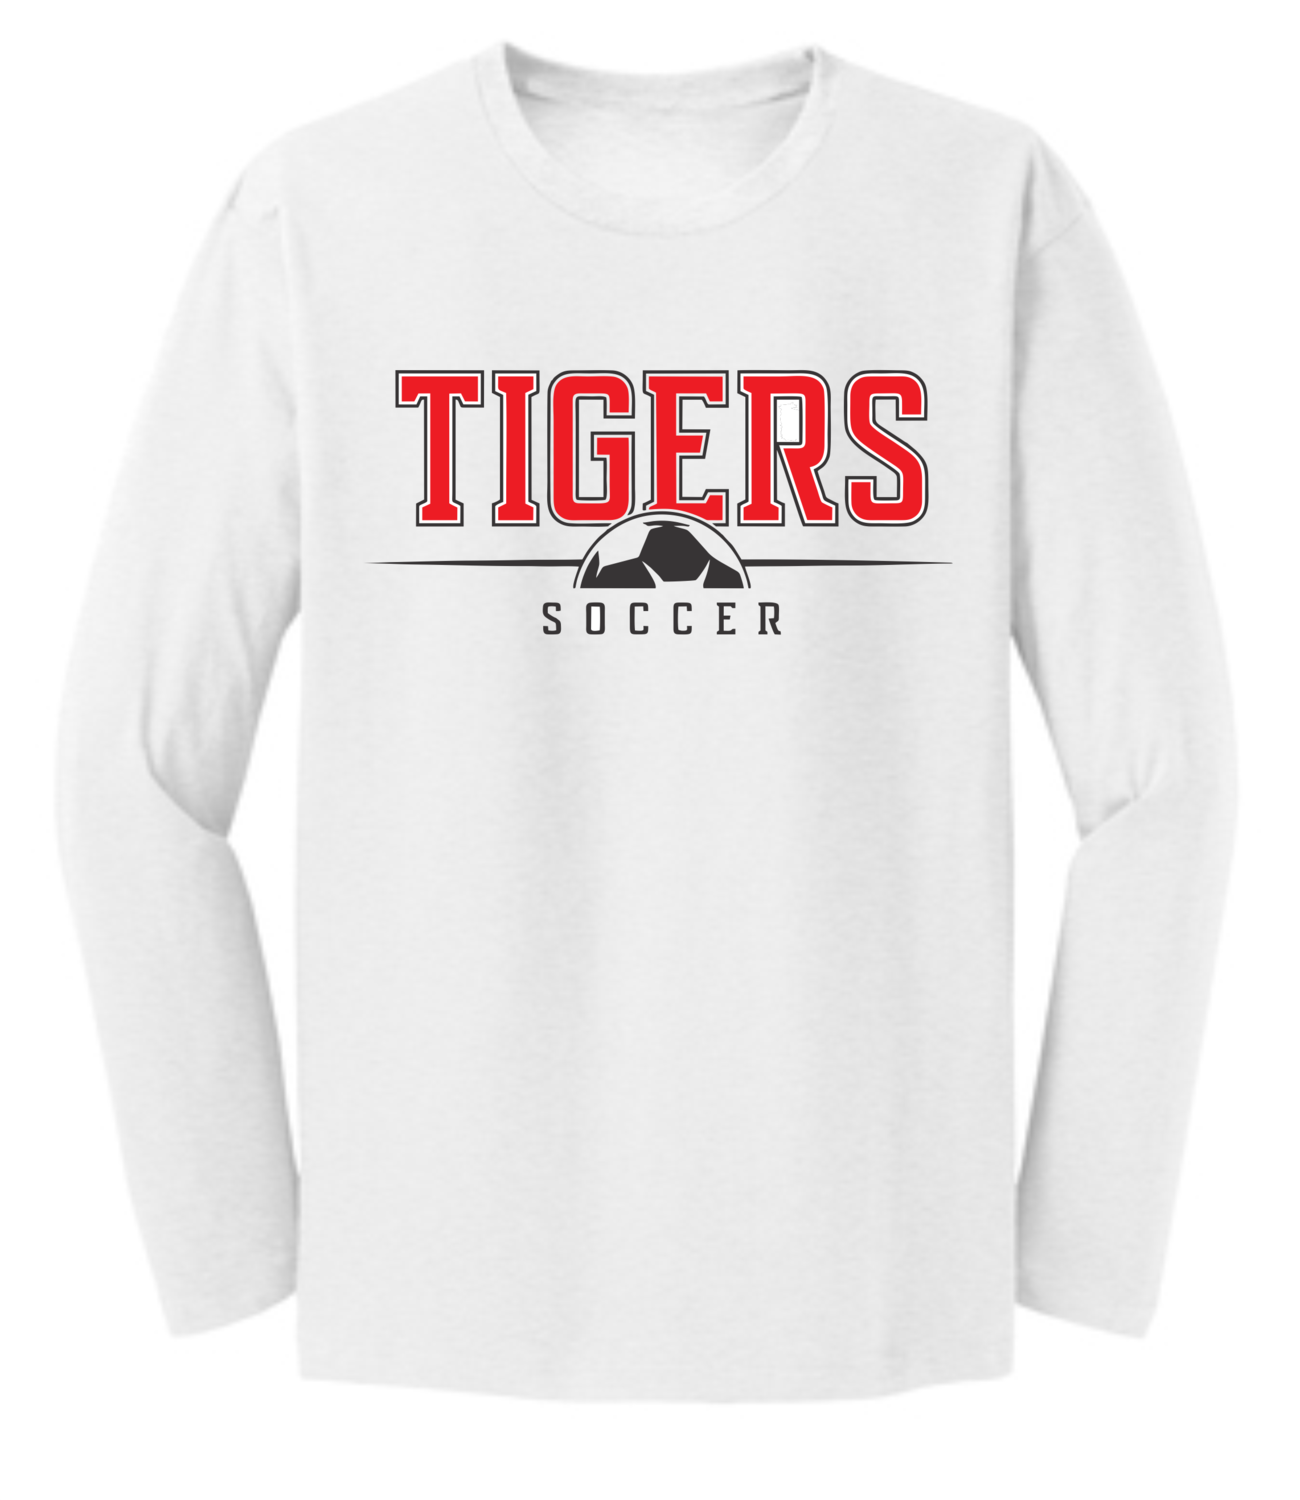 DT6200 District Very Important Tee Long Sleeve - NEOTIGERS2020